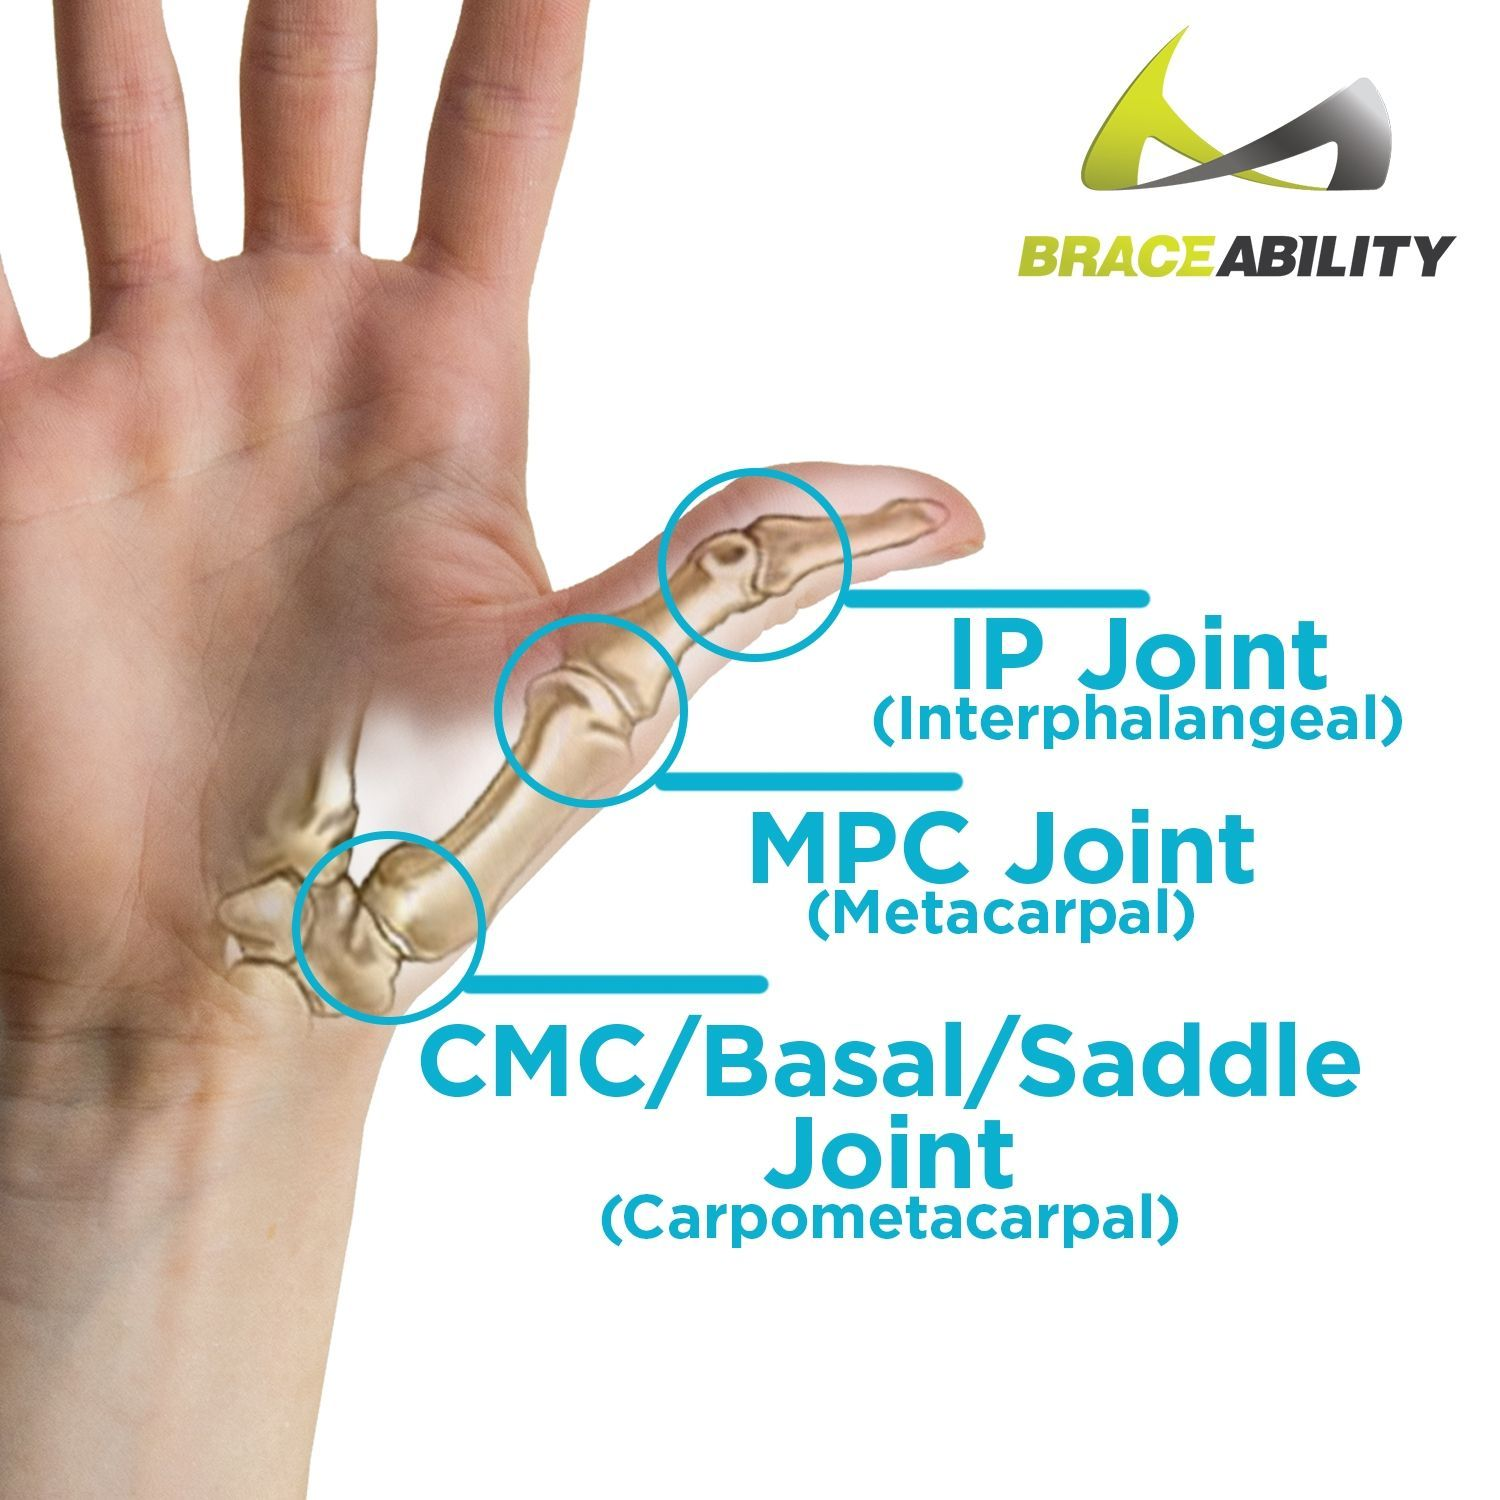 Image showing where your ip mpc and cmc basal saddle